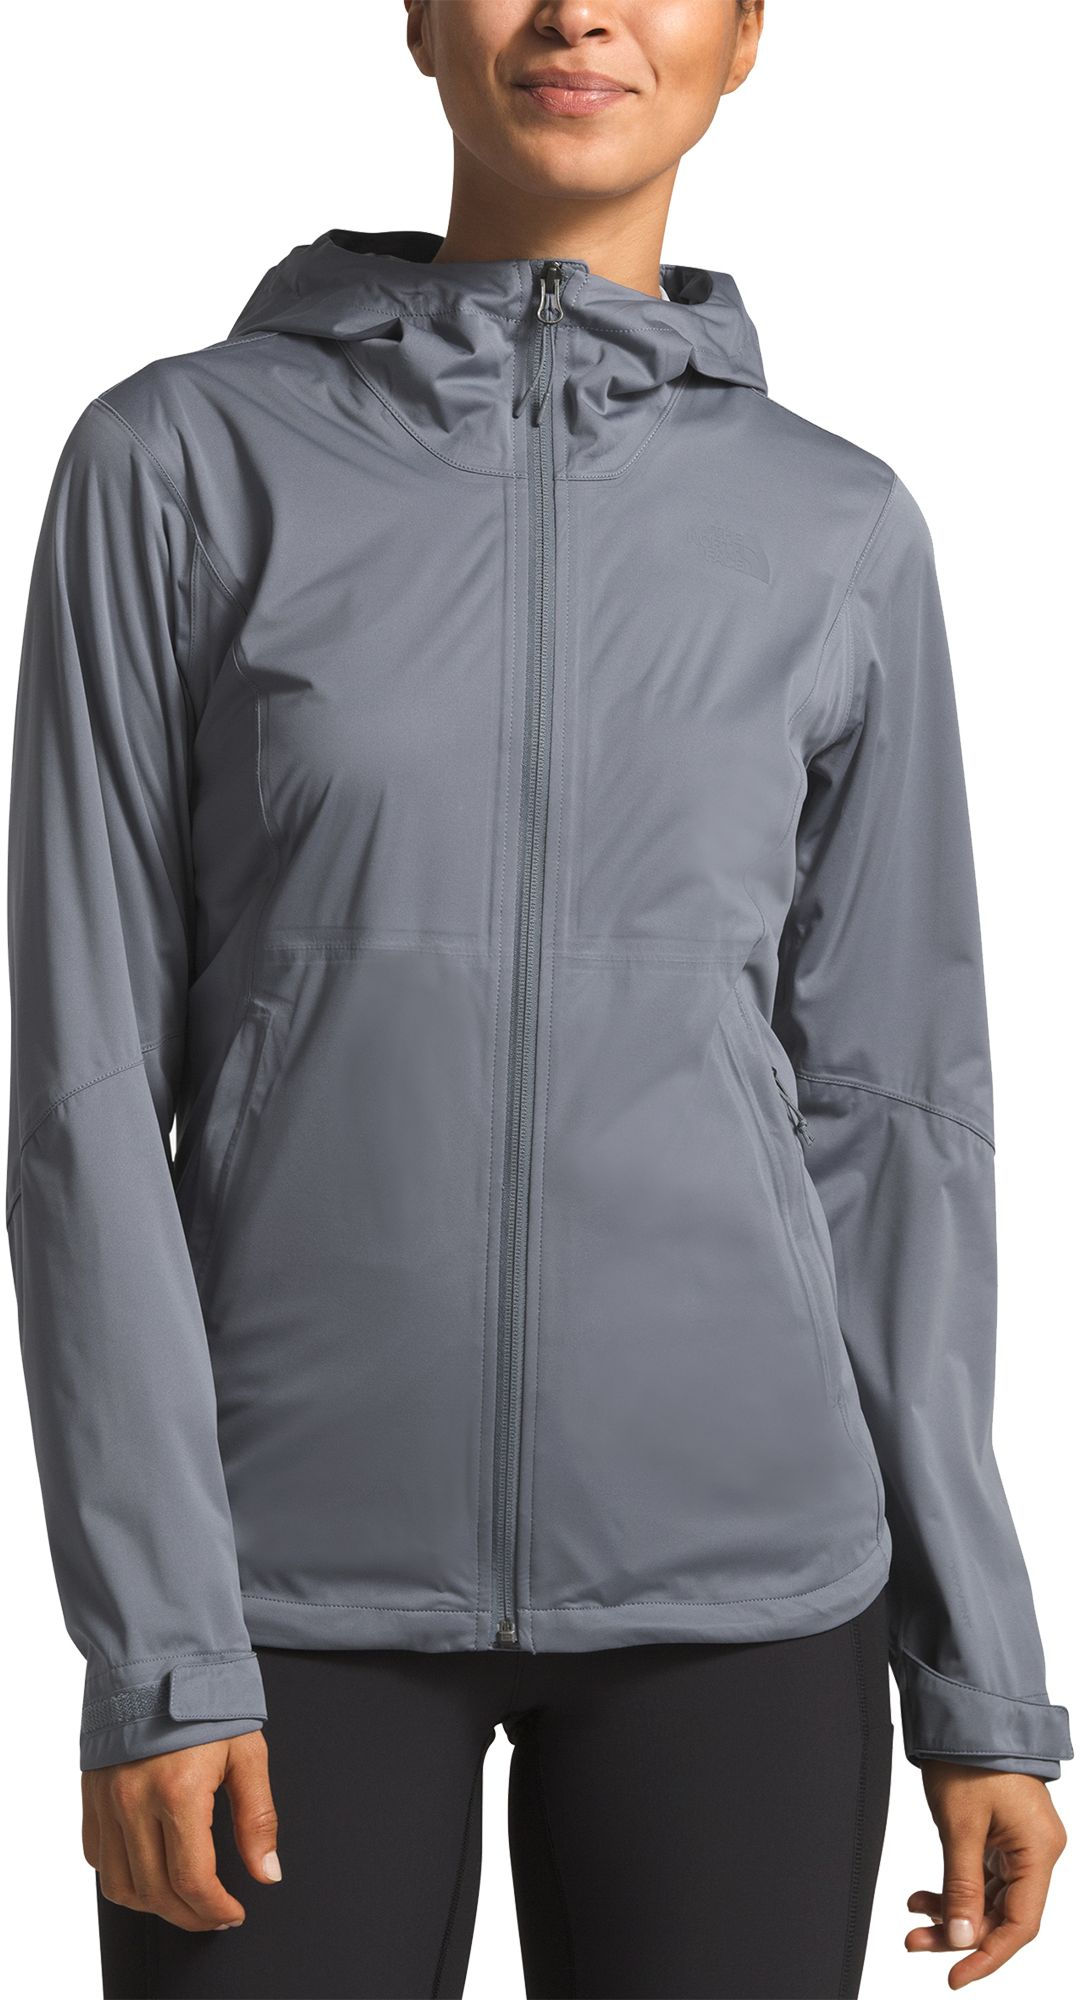 196a874ef The North Face Women's Allproof Stretch Jacket